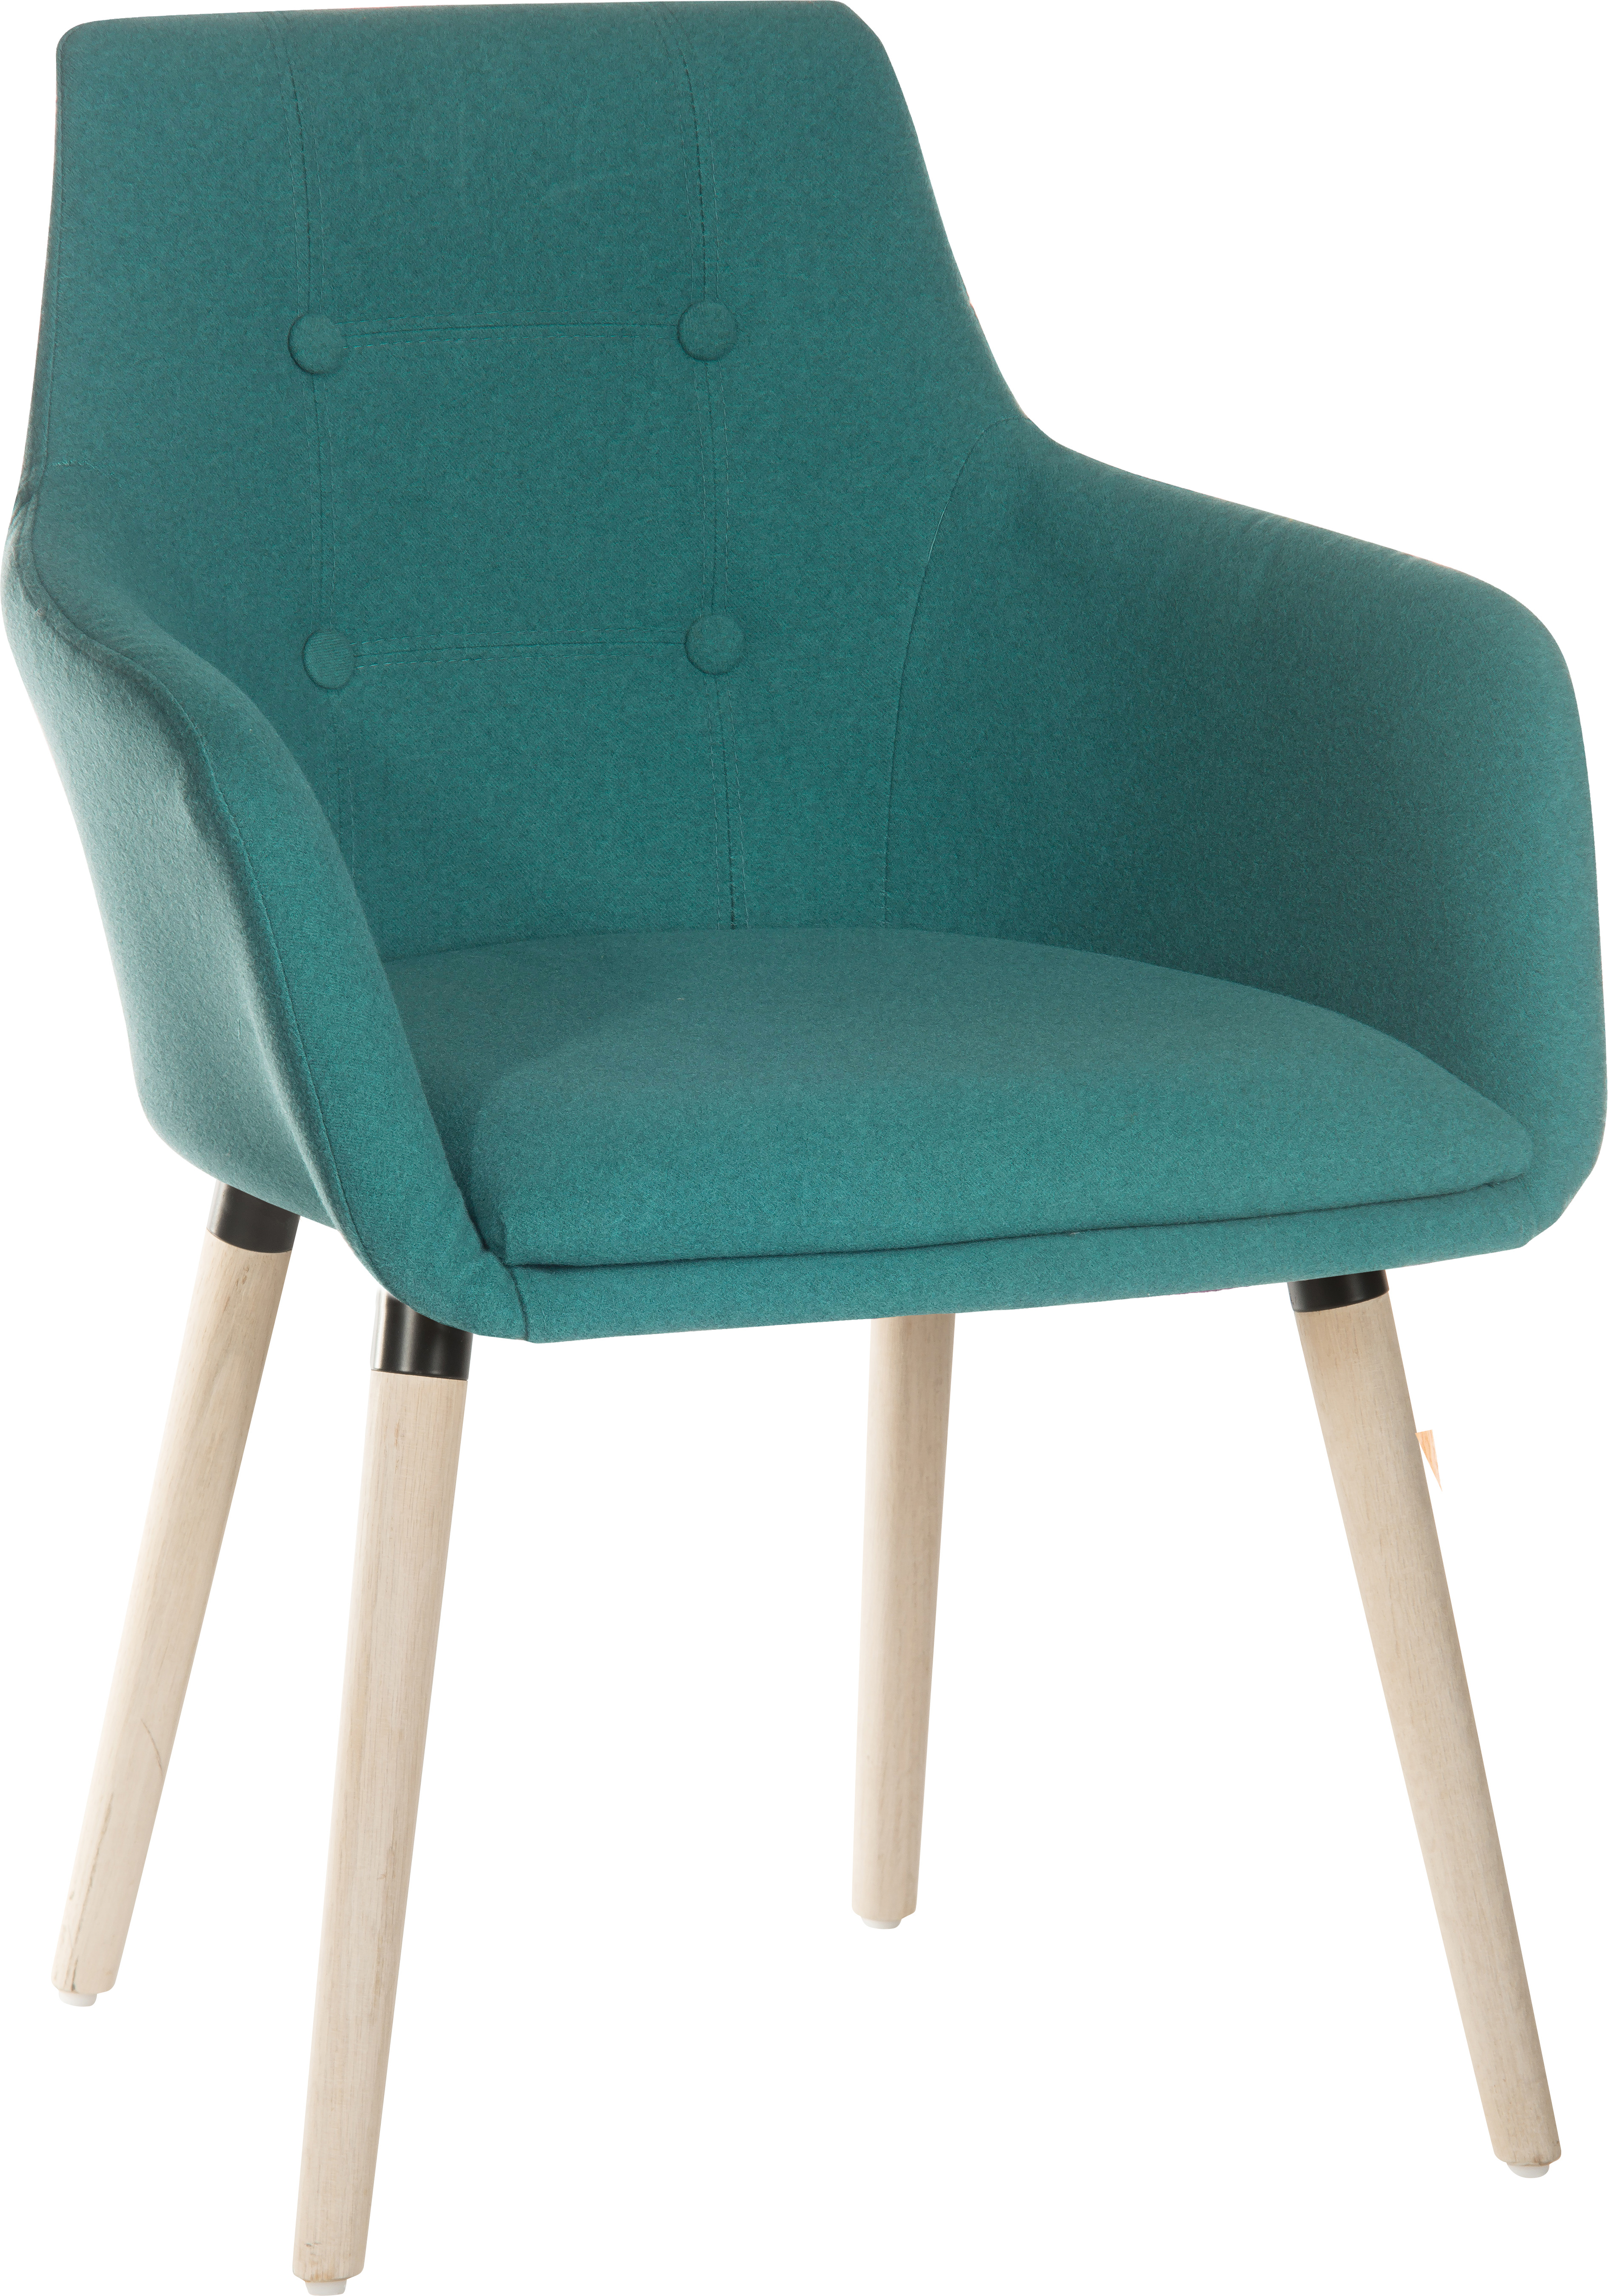 Teknik Office 4 Legged Reception Chair (Pack of 2) Jade Soft Brushed Fabric and Oak Coloured Legs